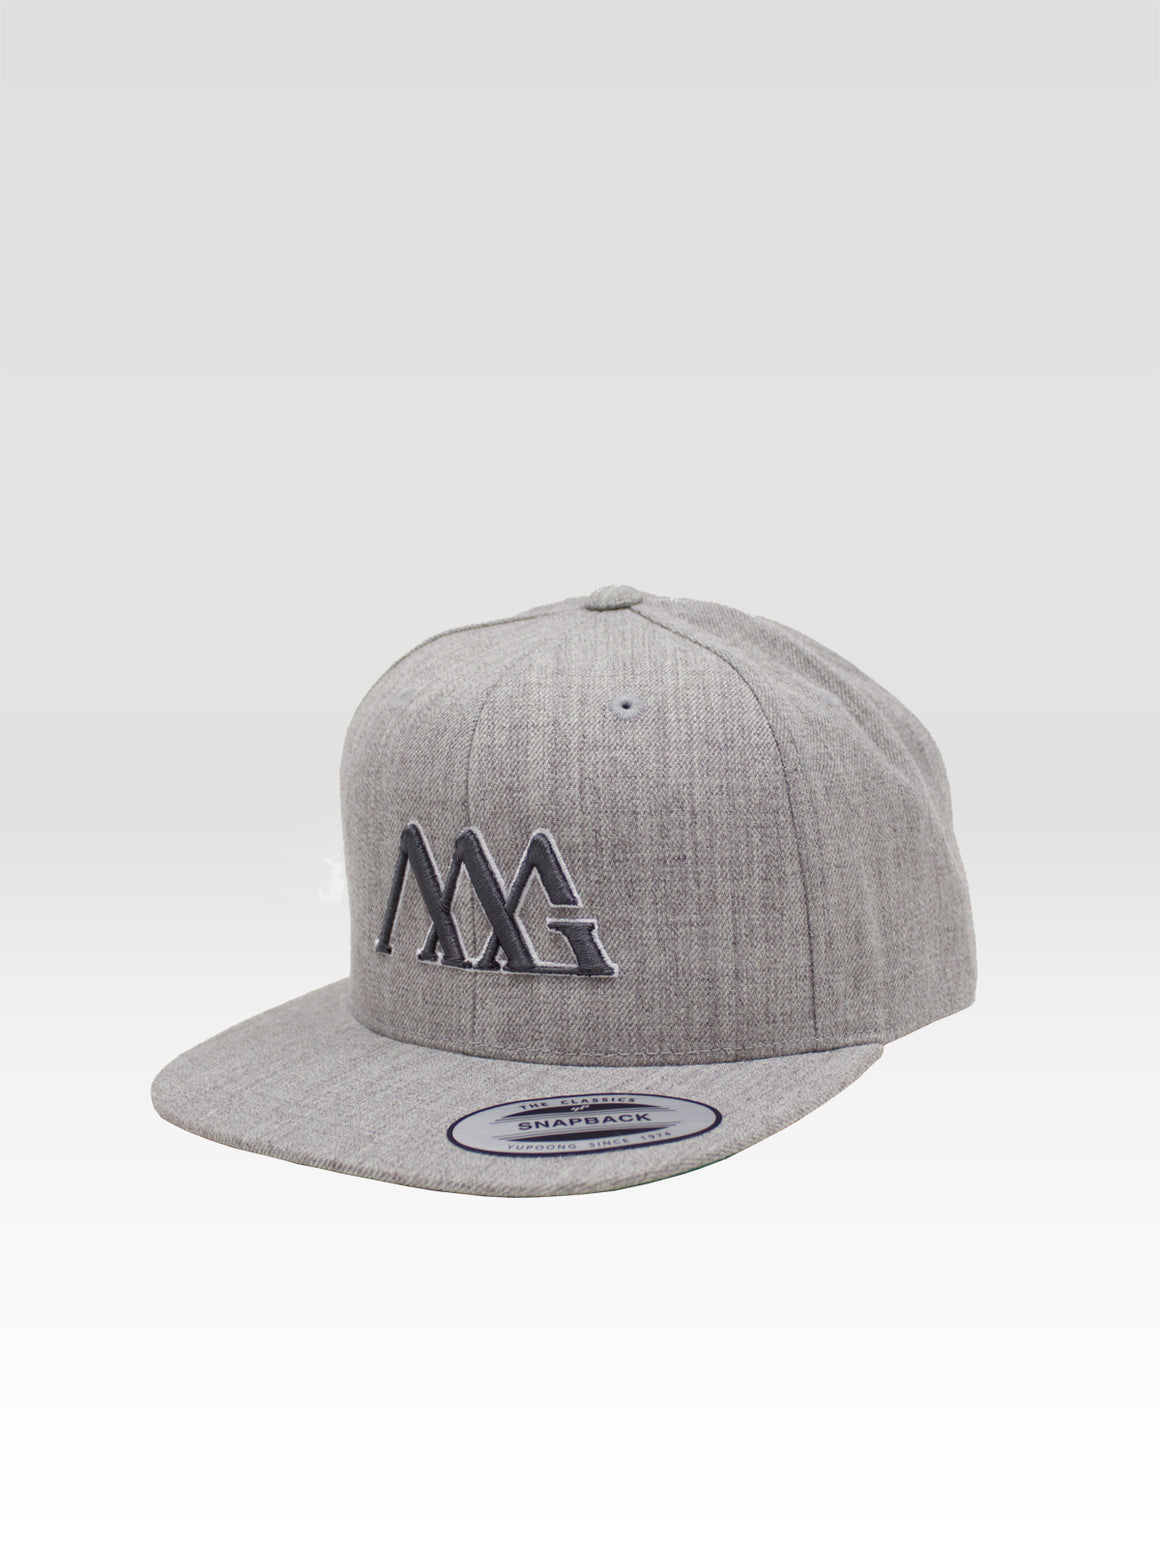 Iconoline Snapback - Heather (Smoke / White)